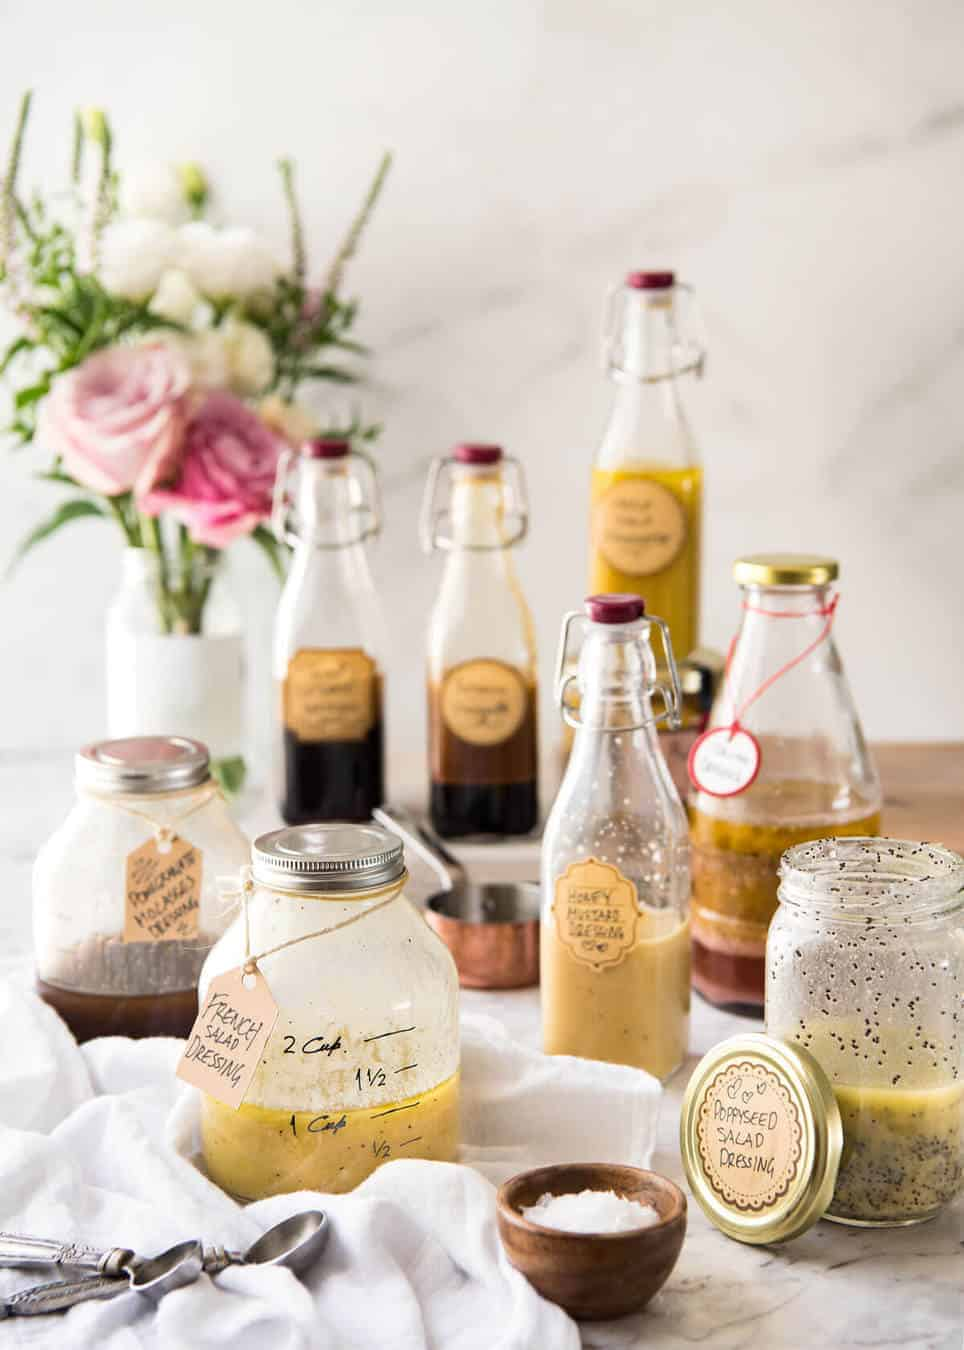 Easy Salad Dressing Recipes - Long Shelf Life, Ready To Use recipetineats.com